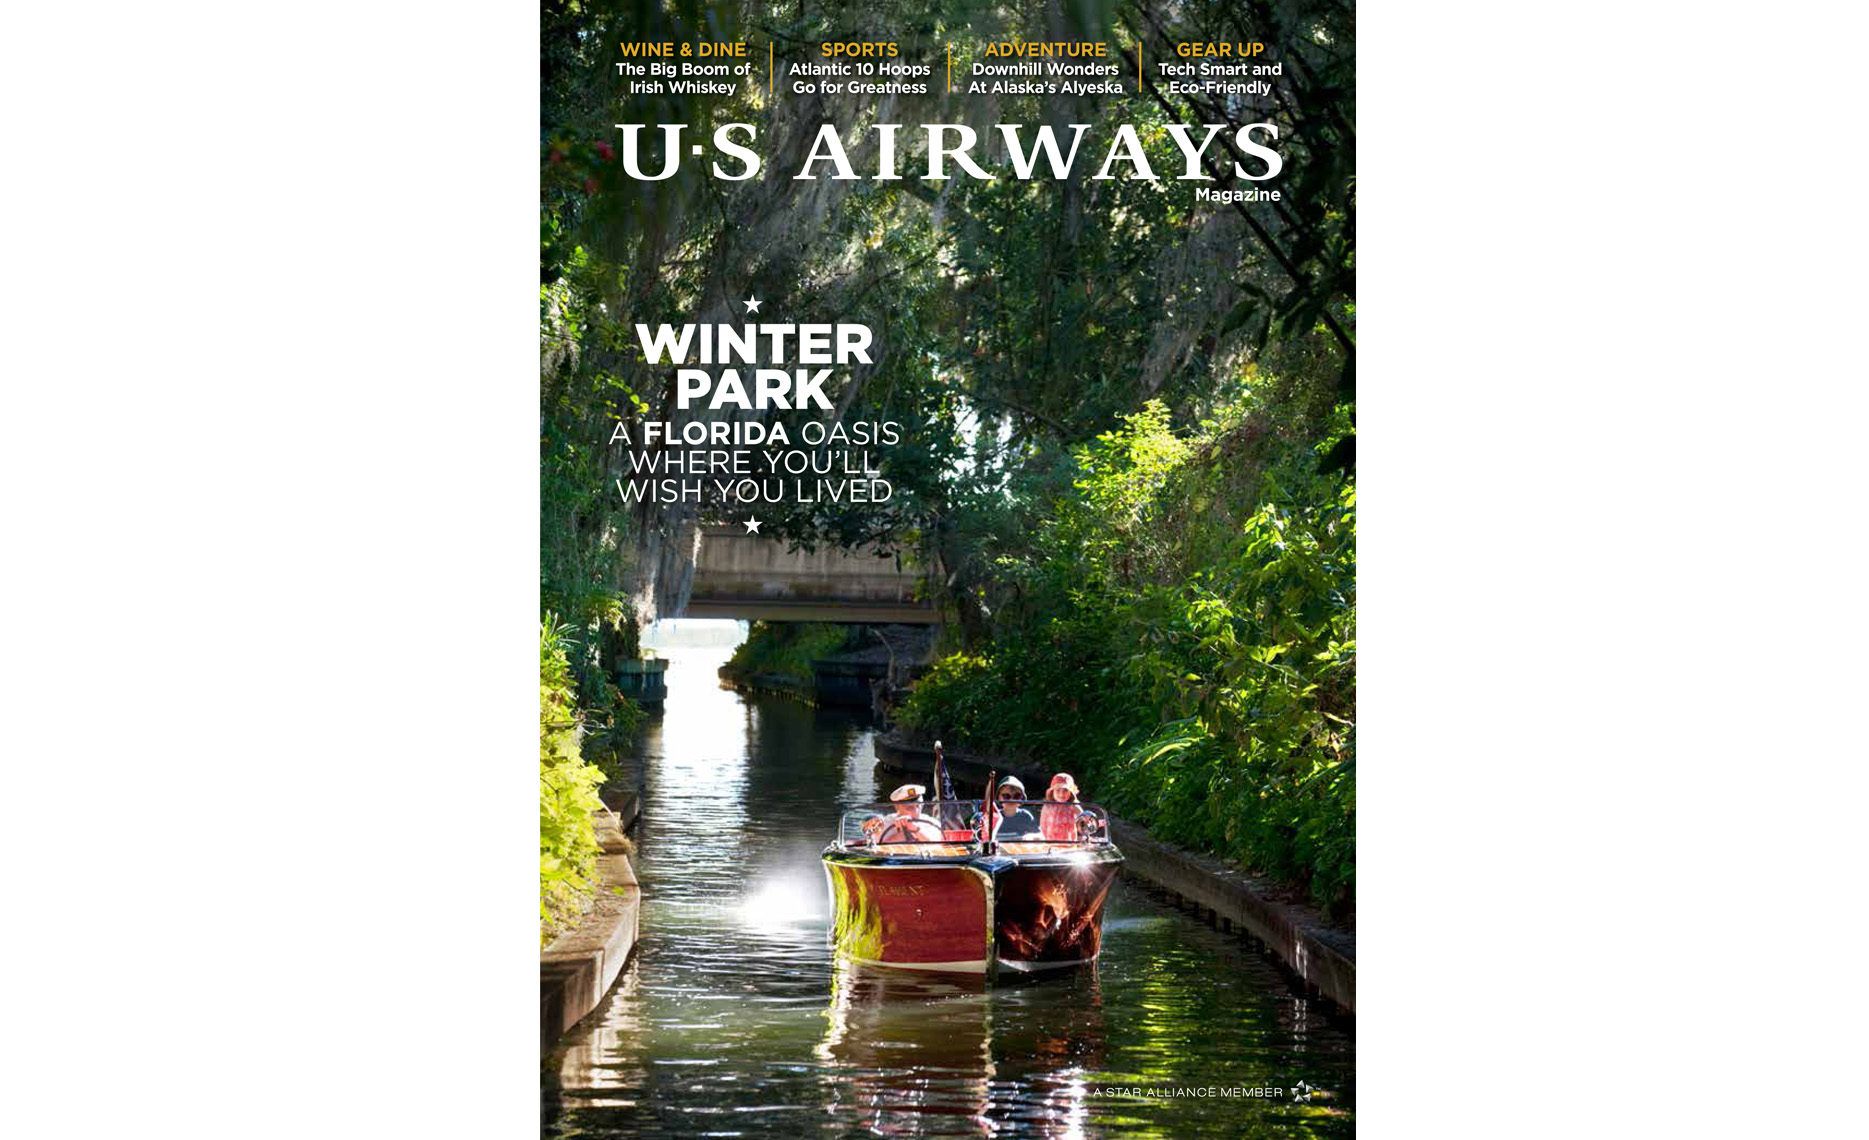 USAirways_cover.jpg